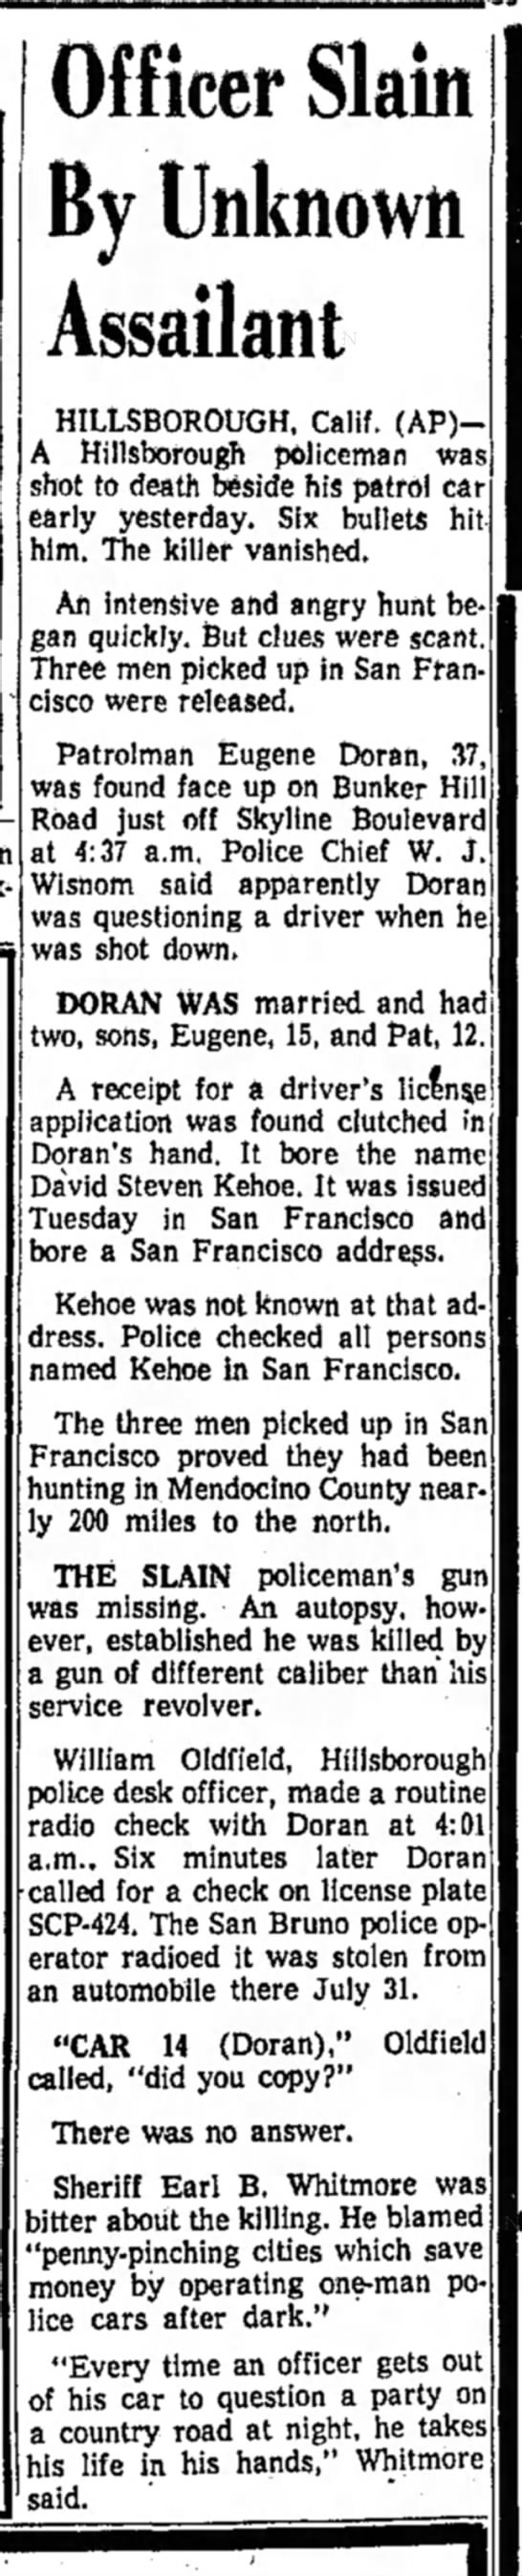 Arizona Republic Aug. 6, 1959